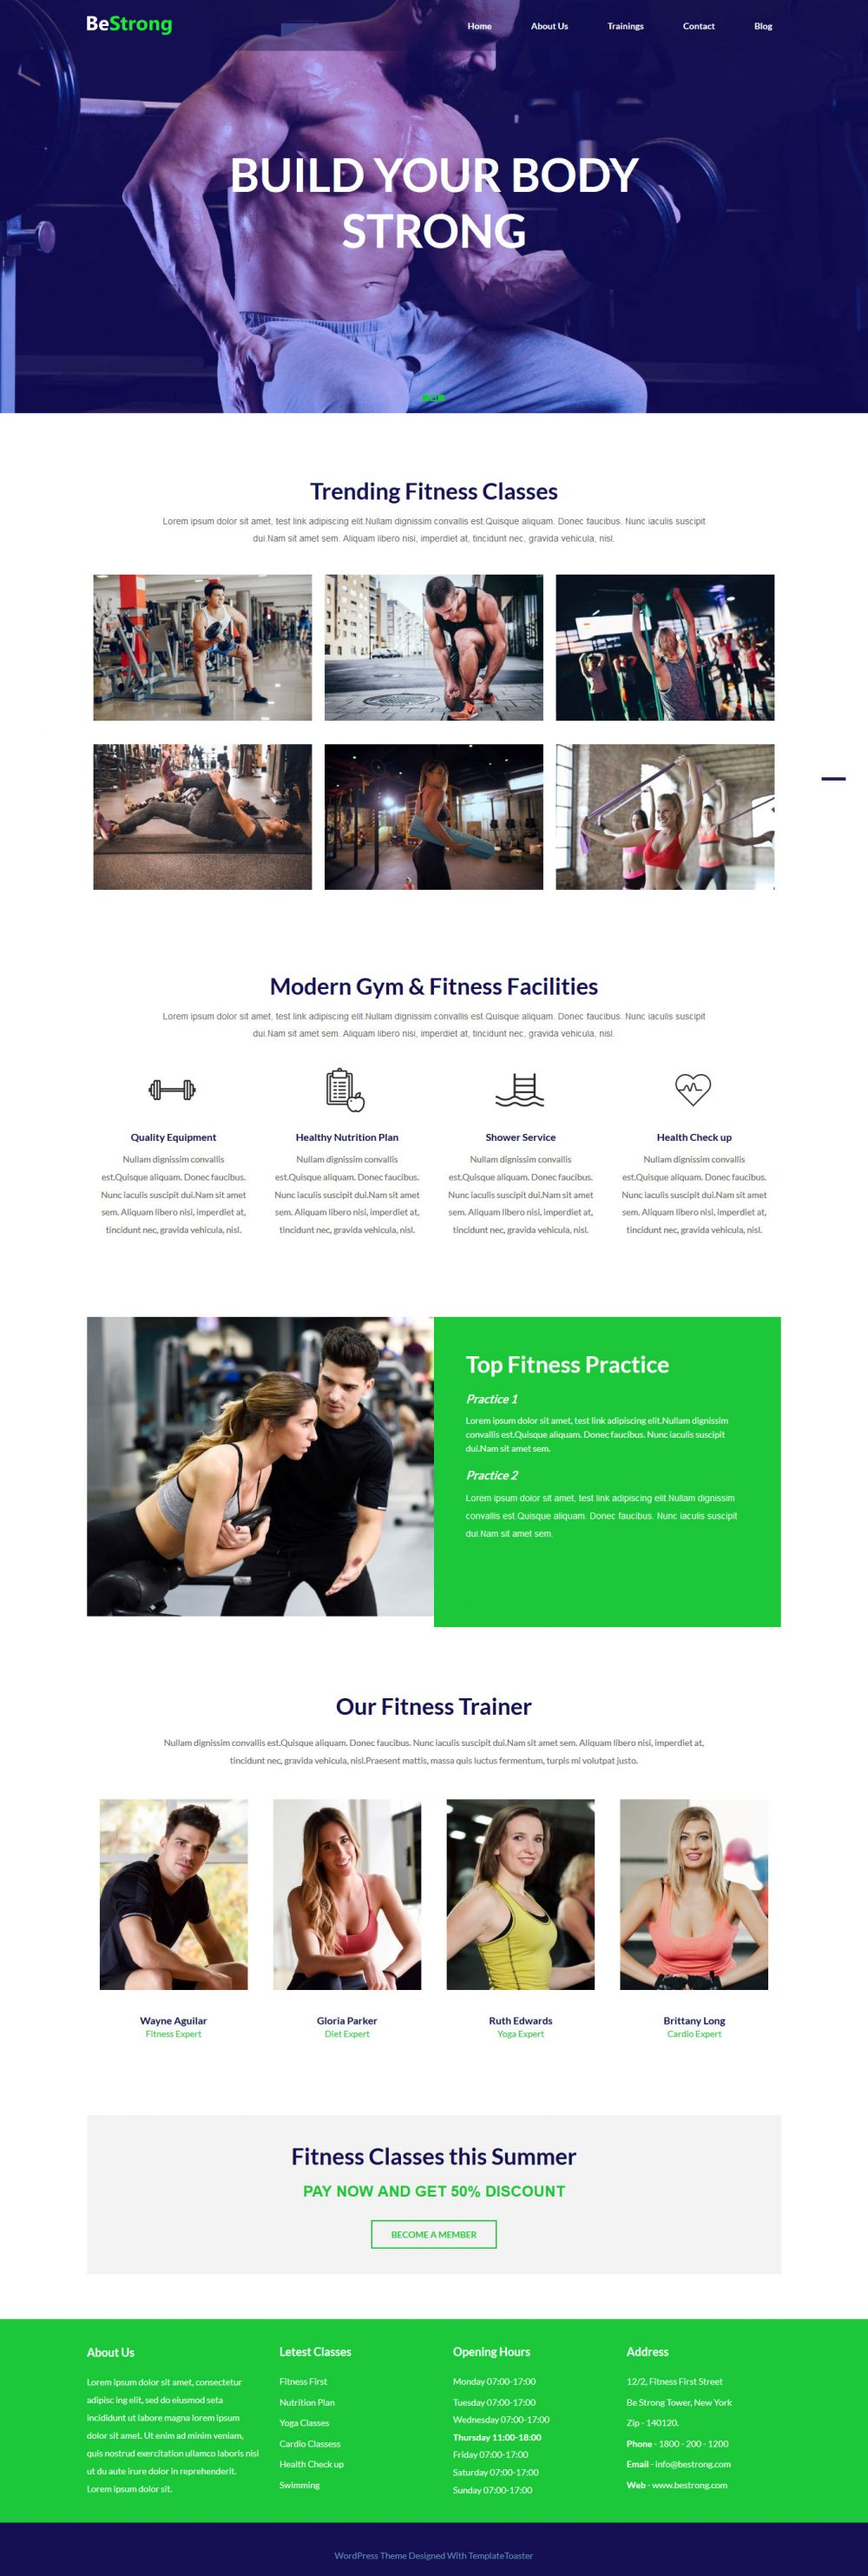 BeStrong Free Joomla Template For Gym and Fitness Industry